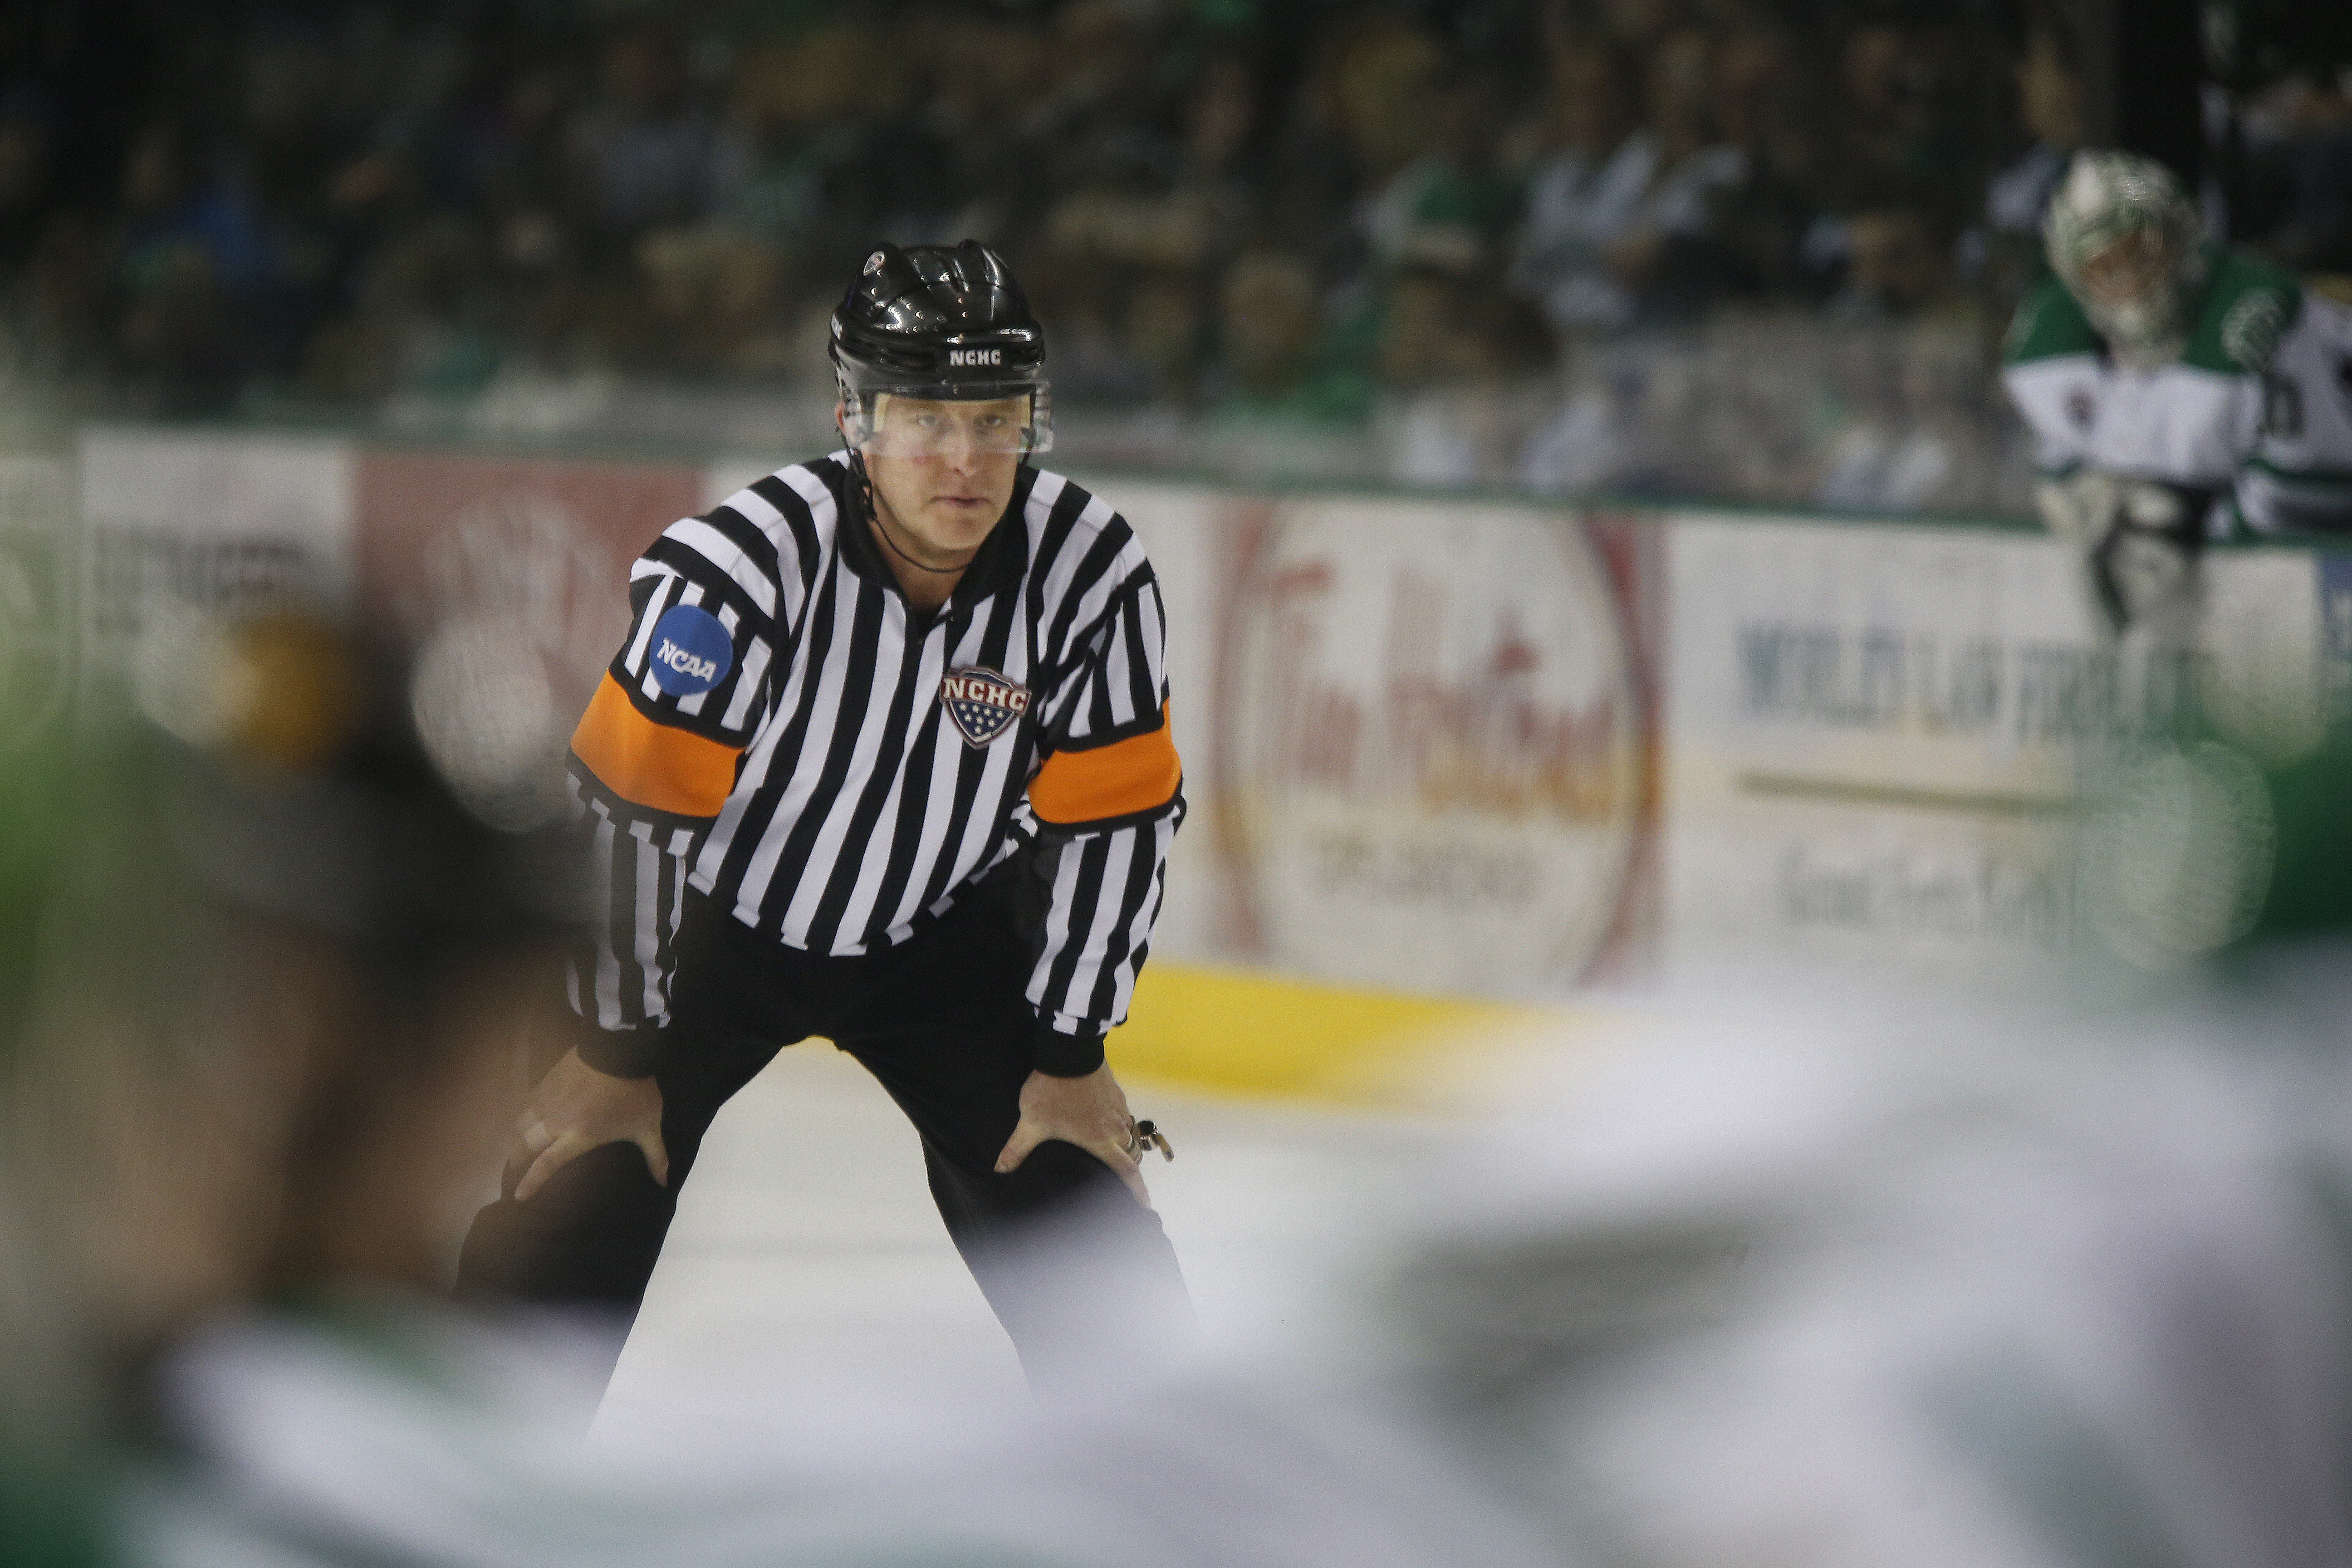 NCAA: Sibley High Grad, Gold Standard Of College Hockey Refereeing, Retires